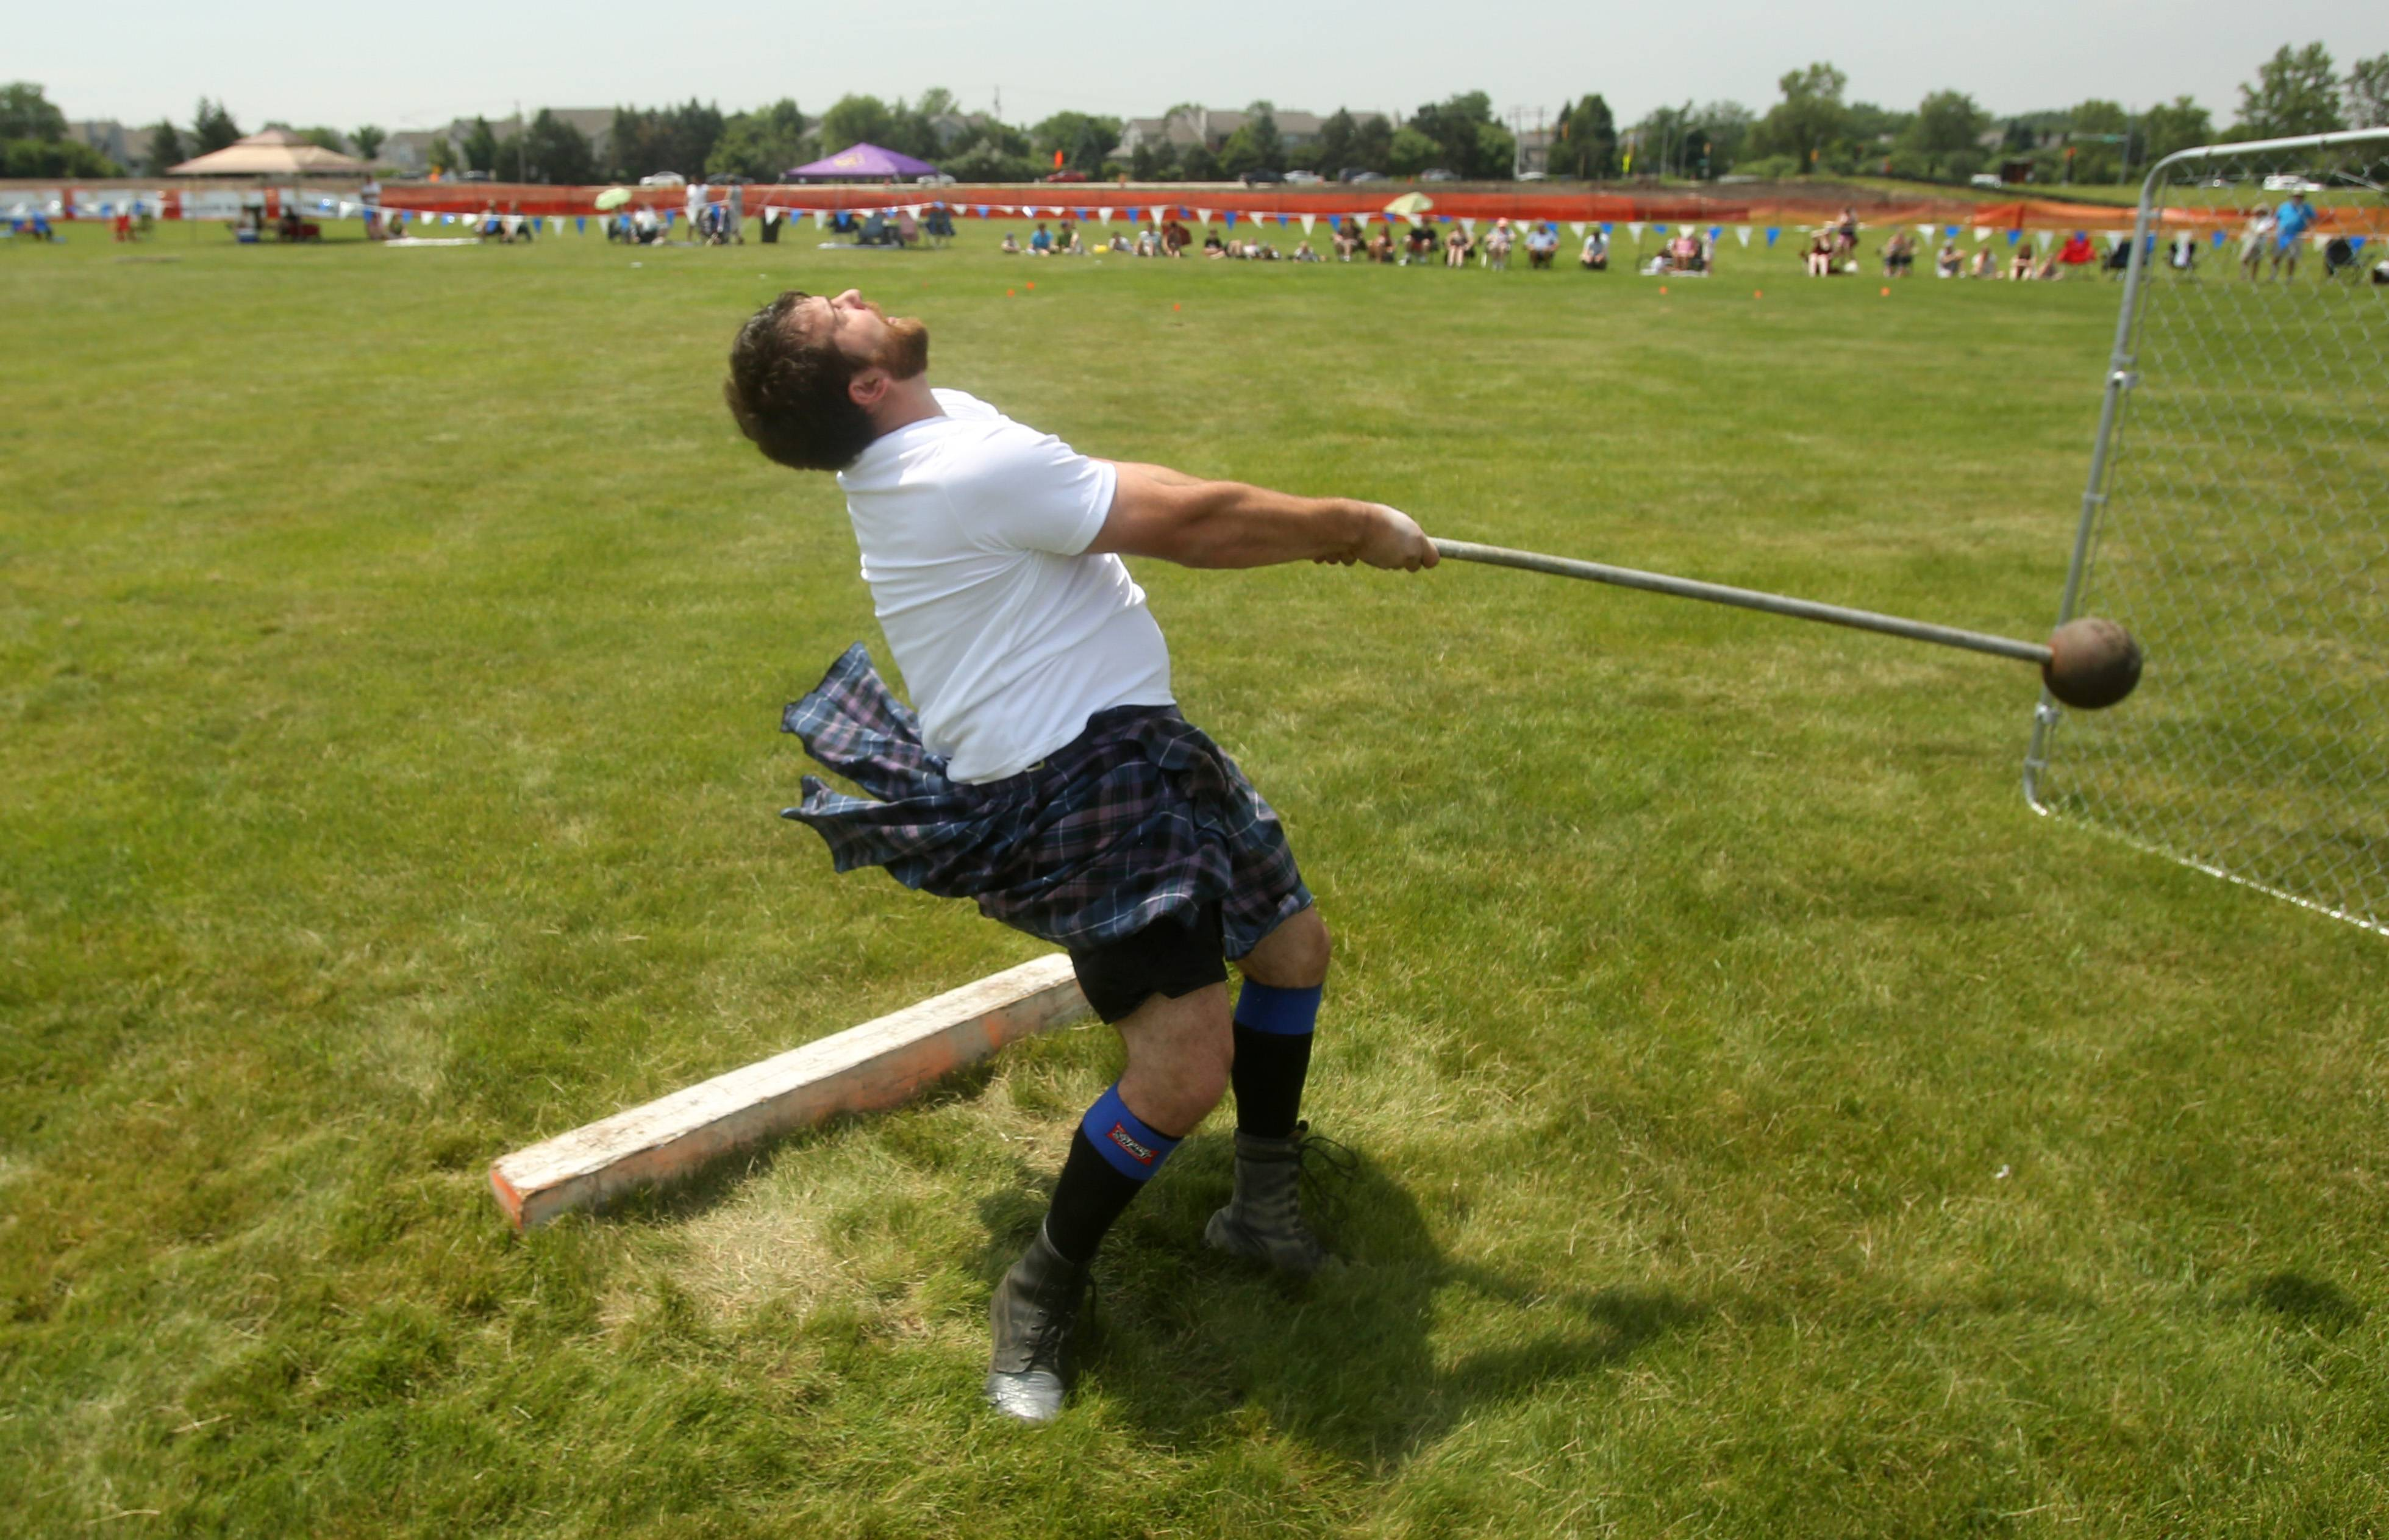 The Scottish Festival and Highland Games, which returns this weekend to Itasca, features some athletic activities you don't see every day -- such as the 22-pound hammer throw.